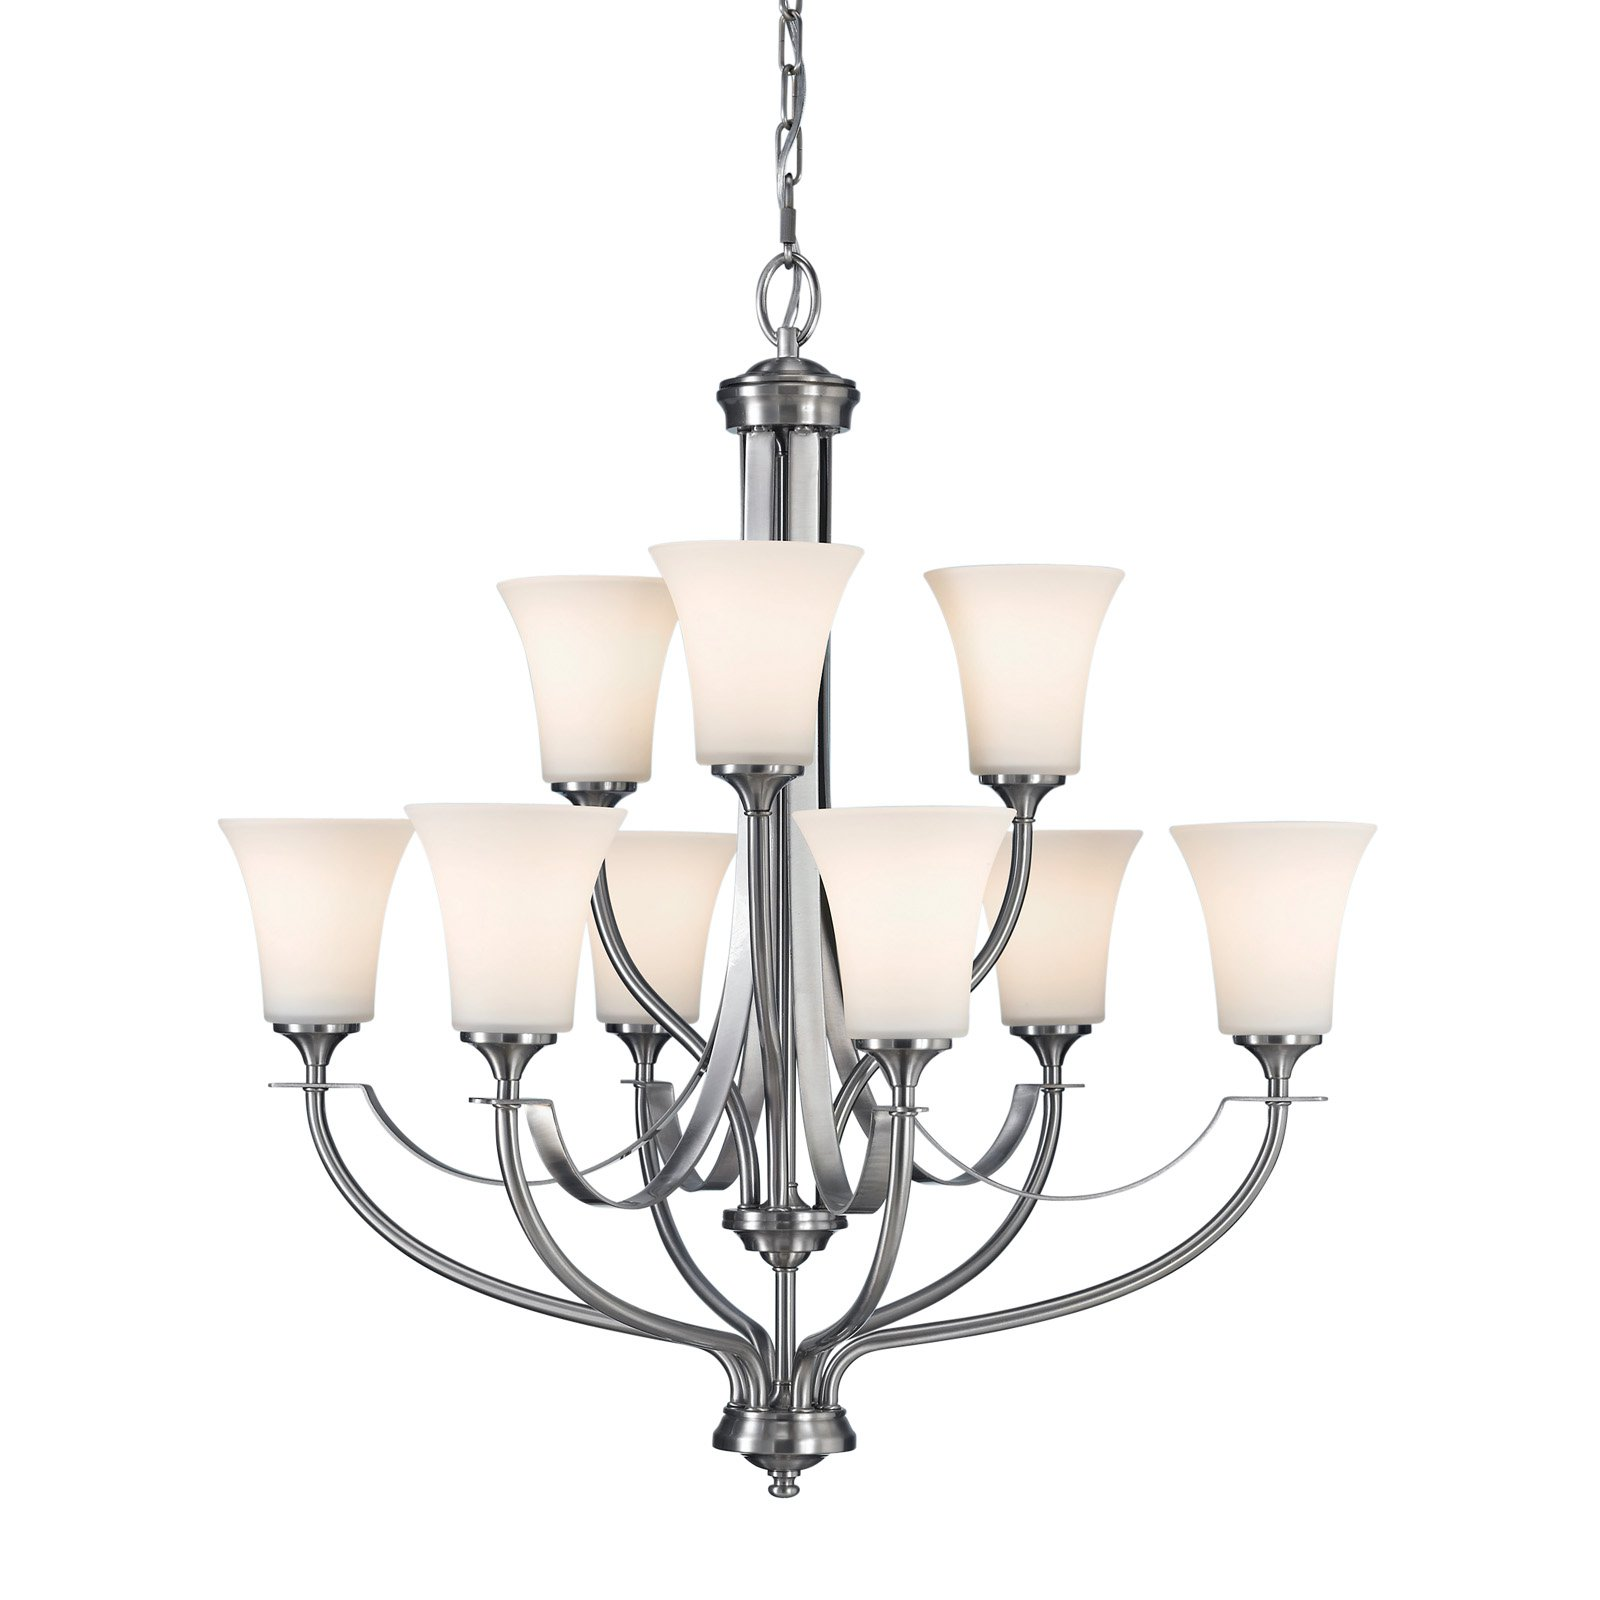 Feiss Barrington Chandelier 29W in. Brushed Steel by Murray Feiss